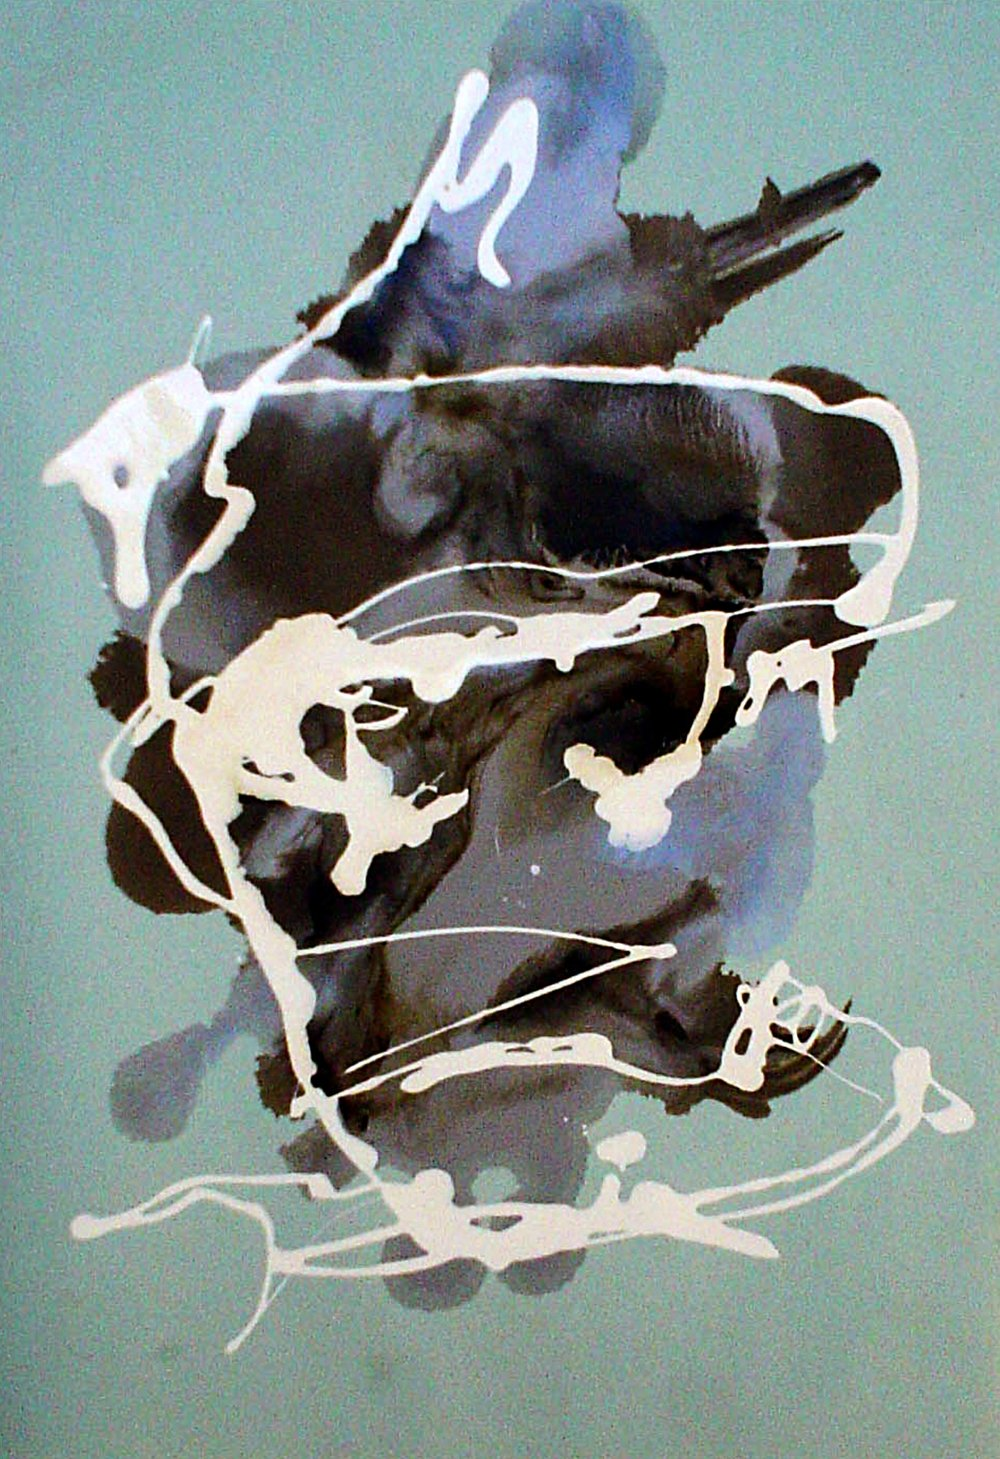 Soldier's head IV oil on paper 21 x 29cm  2003-2004